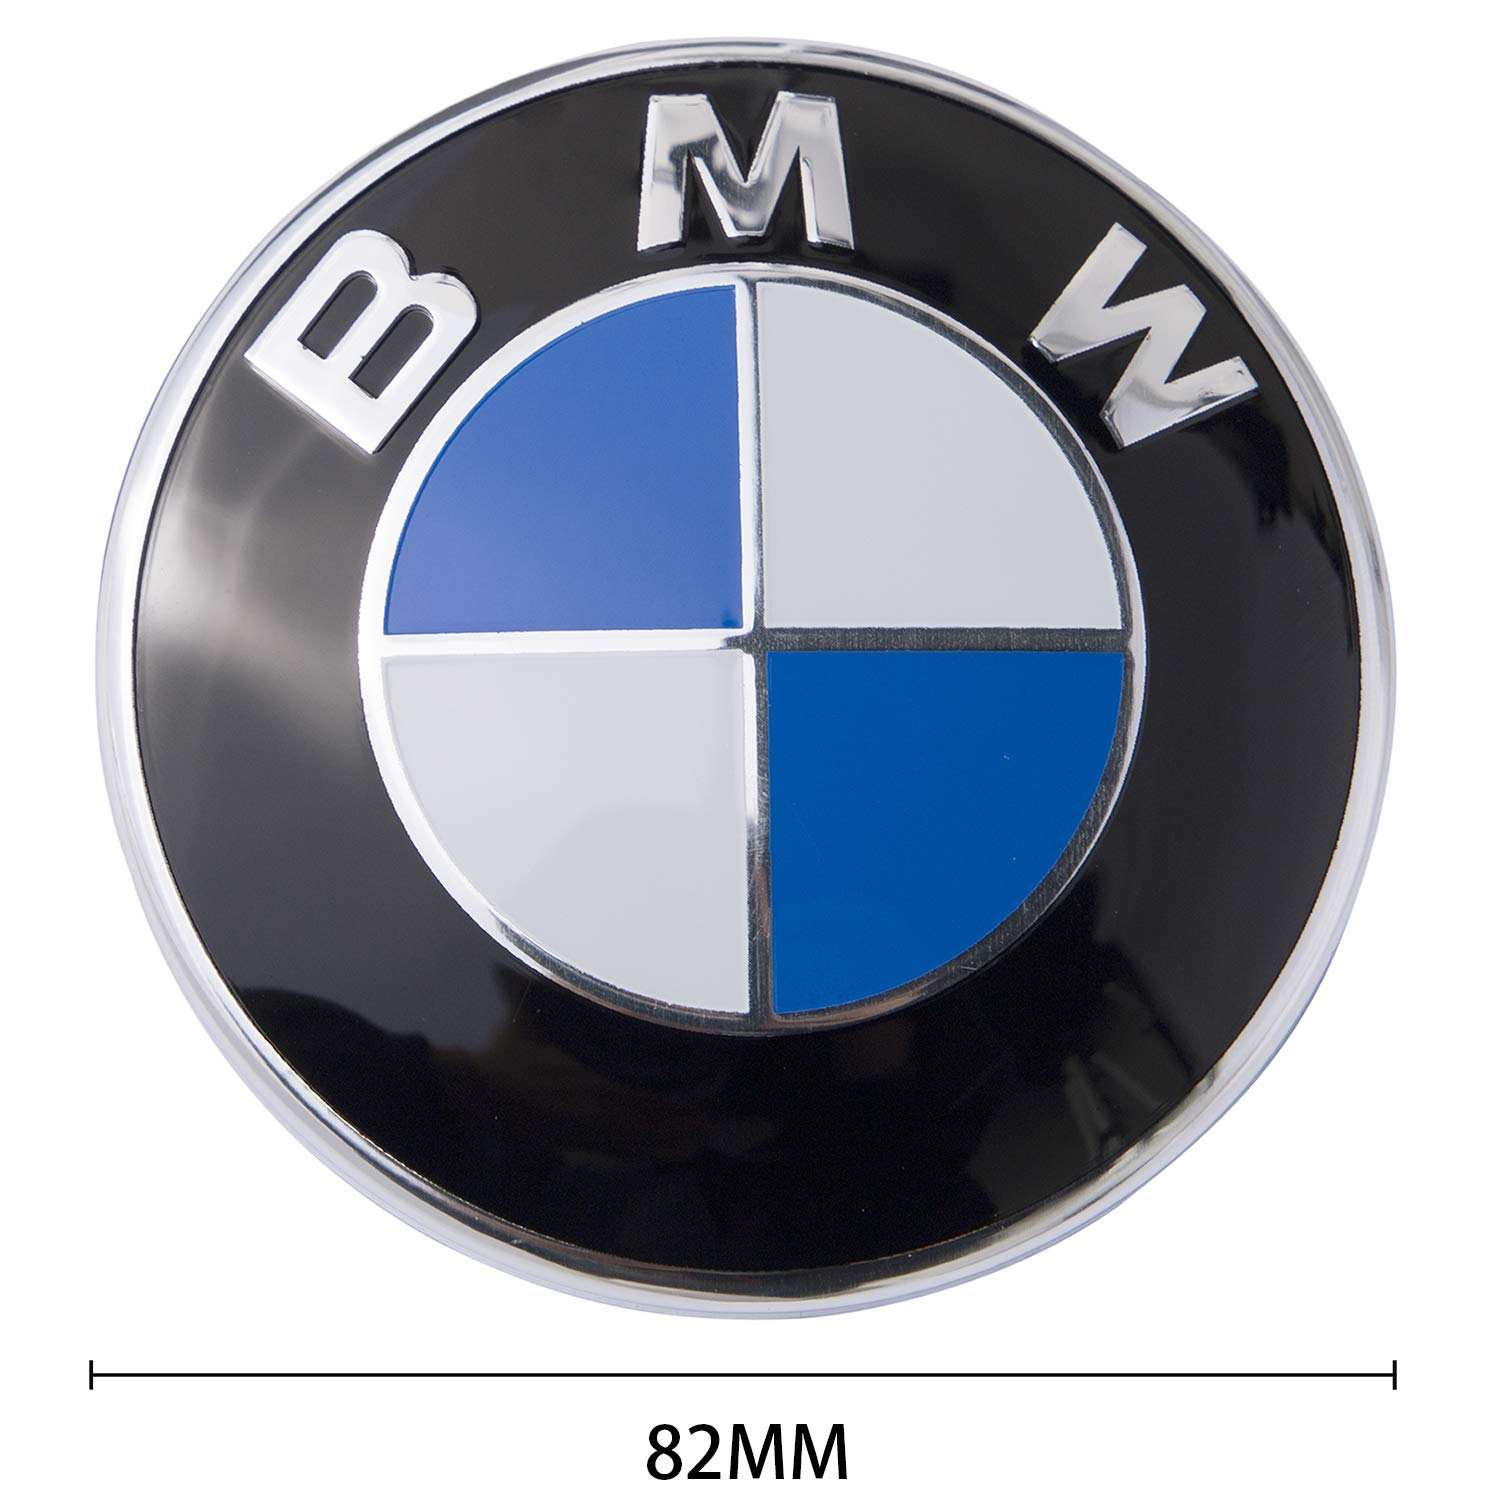 BMW Emblem Replacement for BMW Hood or Trunk E30 E36 E34 E60 E65 E38 X3 X5 X6 3-Series 82mm 7-Series etc 1 Pack 5-Series 82MM /& 73MM 6-Series BMW Logo